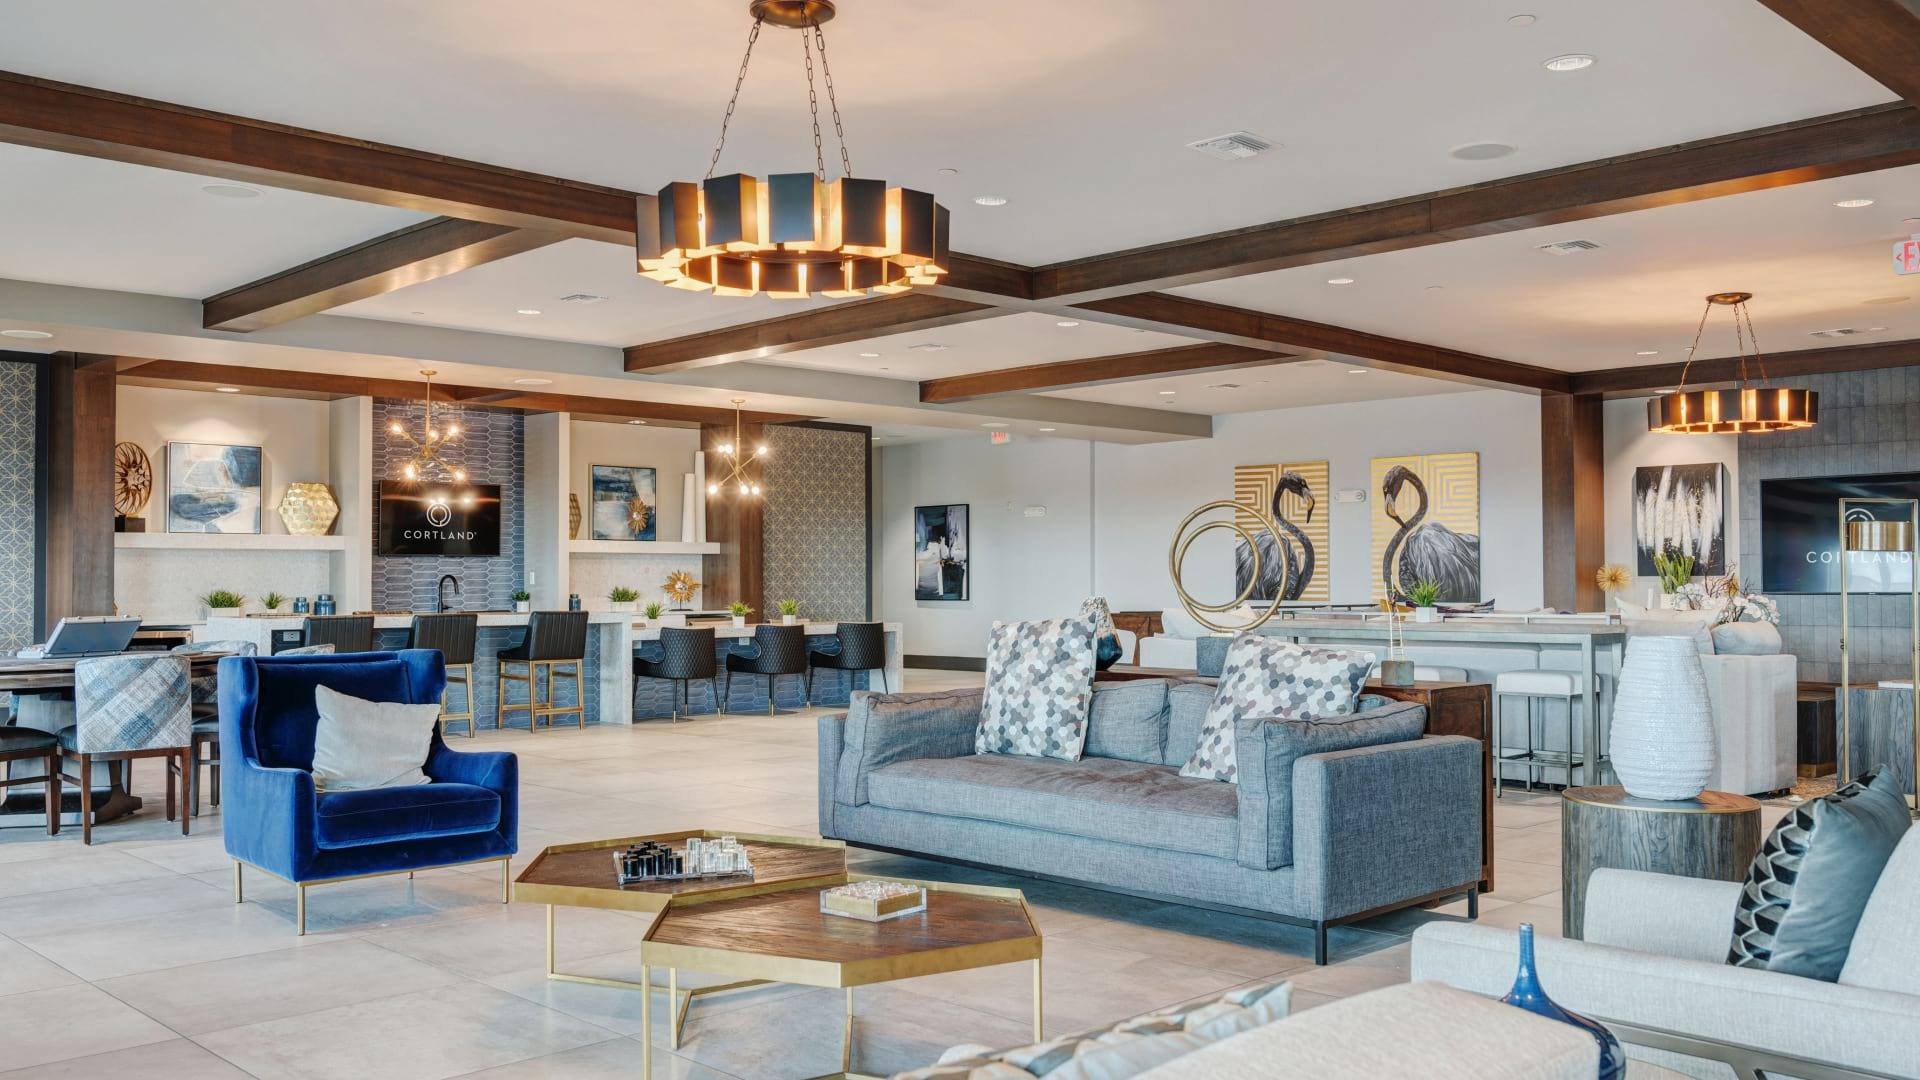 Resident clubroom at Cortland on Orange luxury apartments near downtown